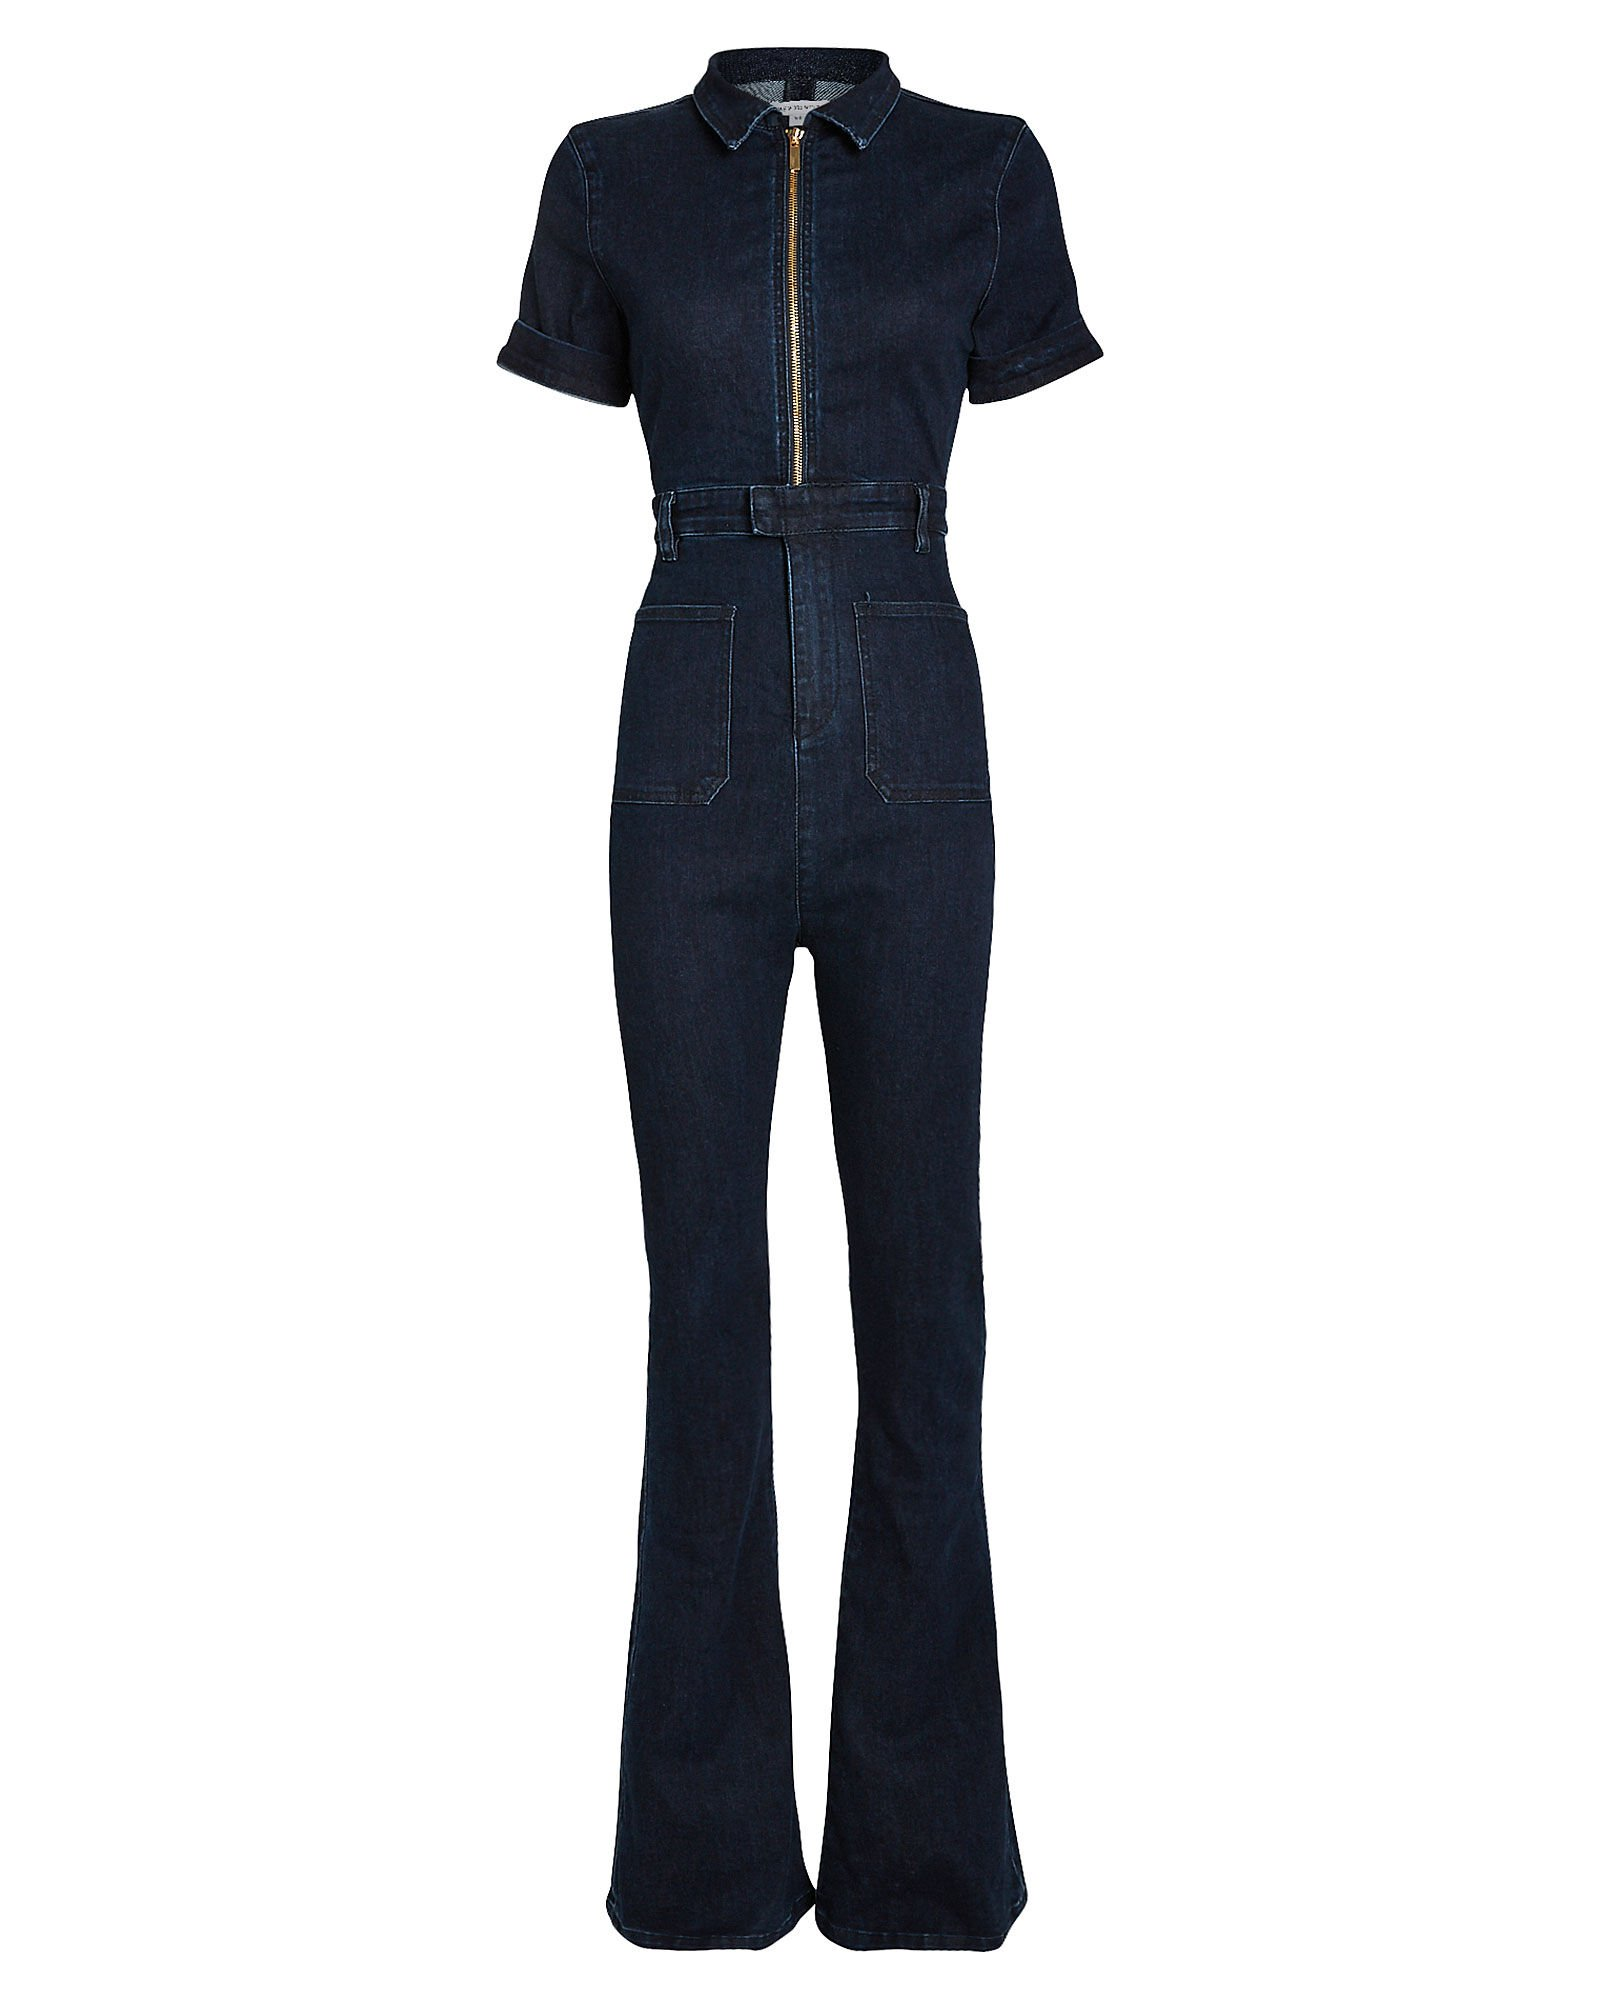 The Dark Wash Denim Jumpsuit